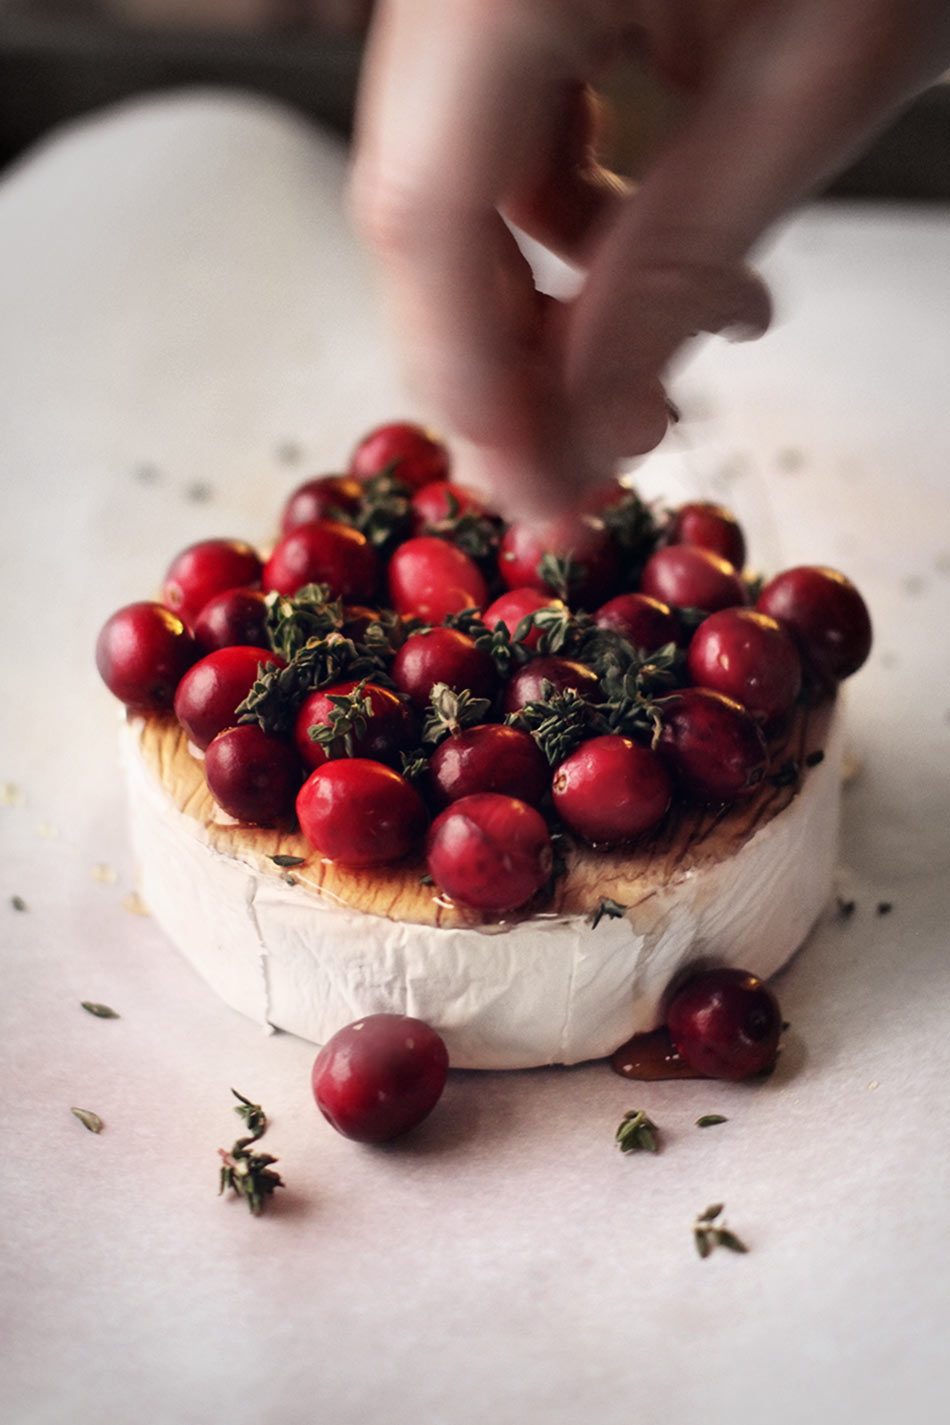 Baked Brie Maple-Roasted Cranberry